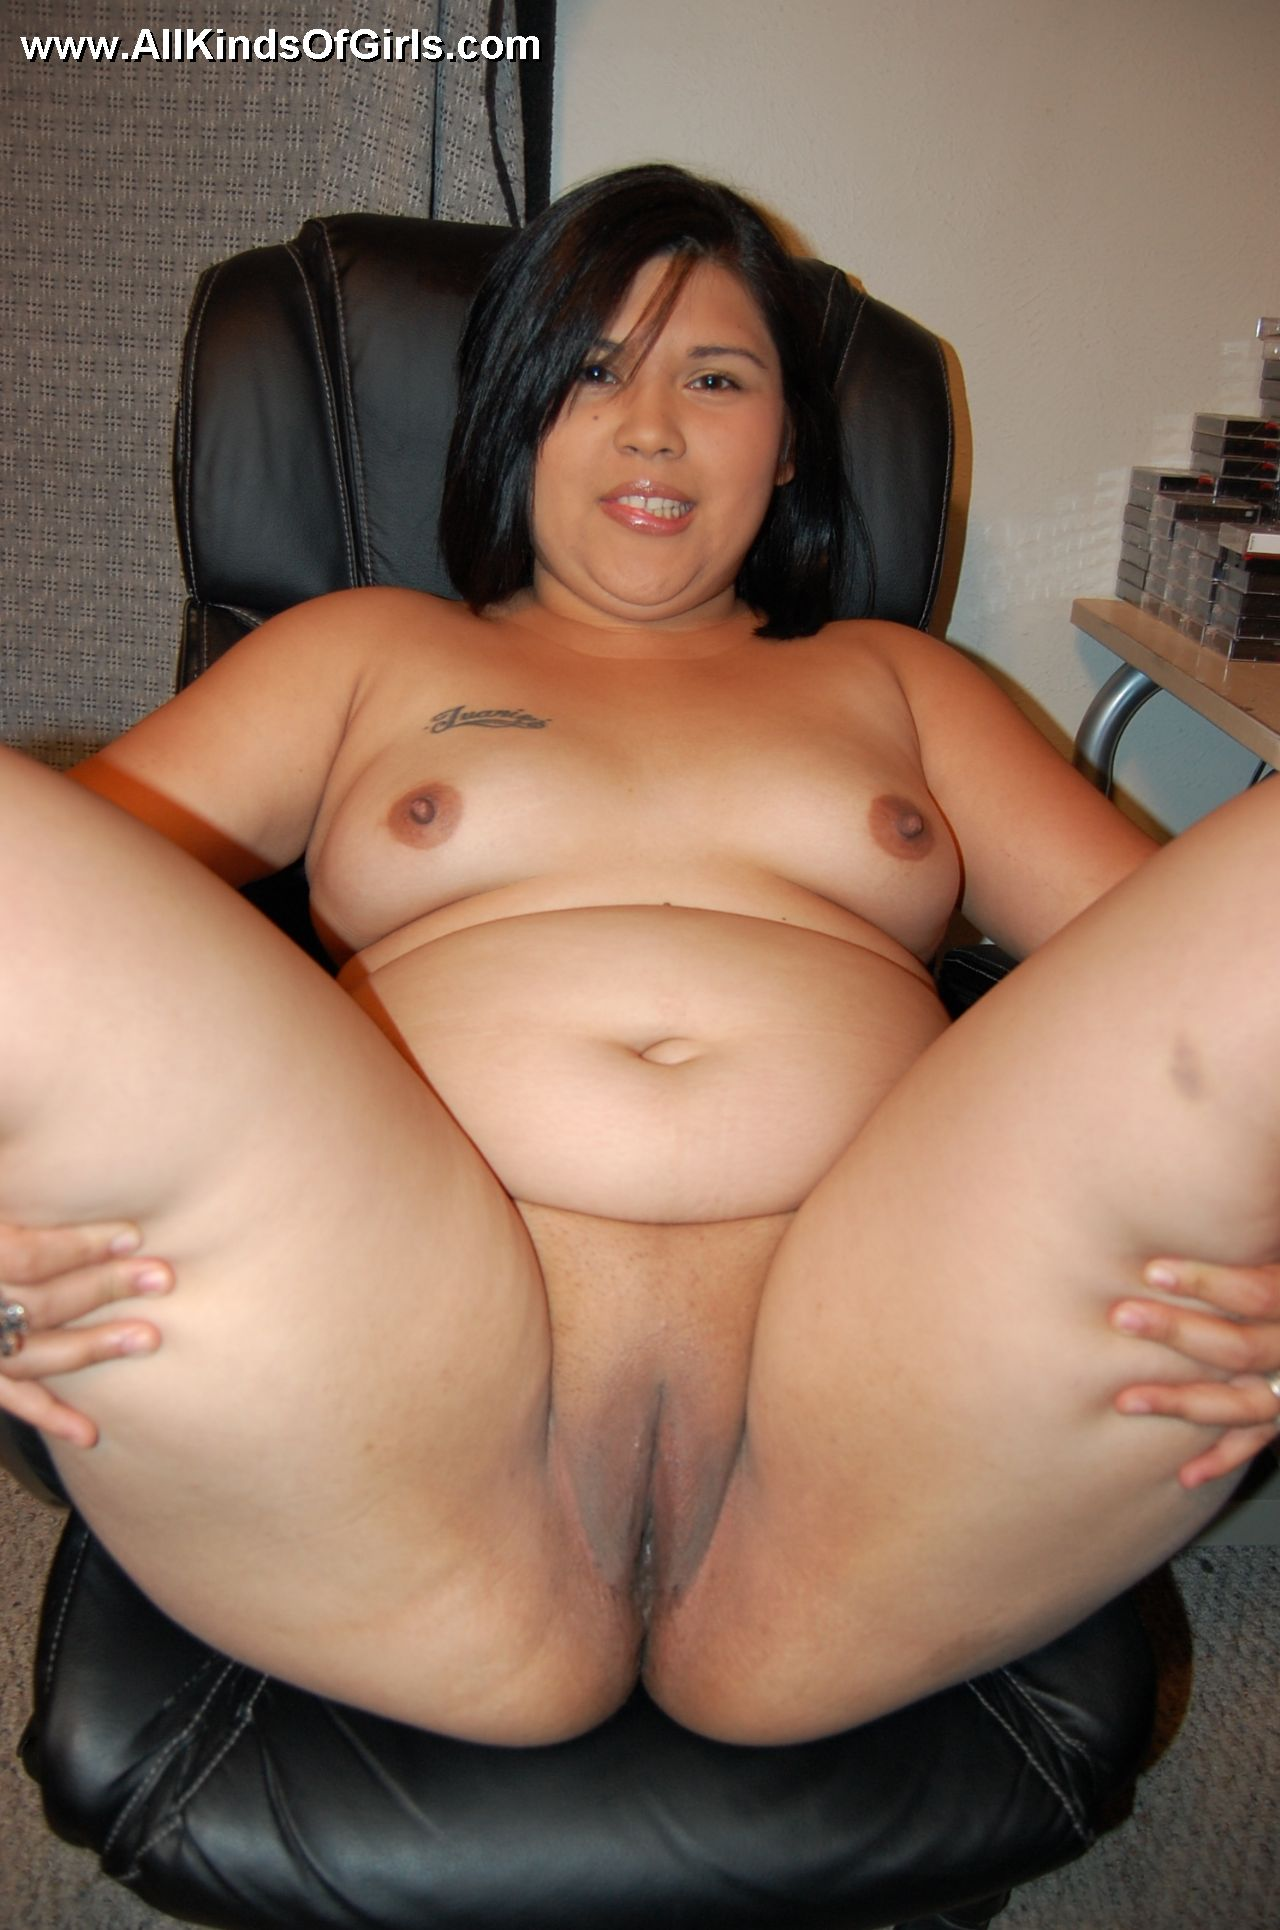 Sexy naked chubby girls cum can